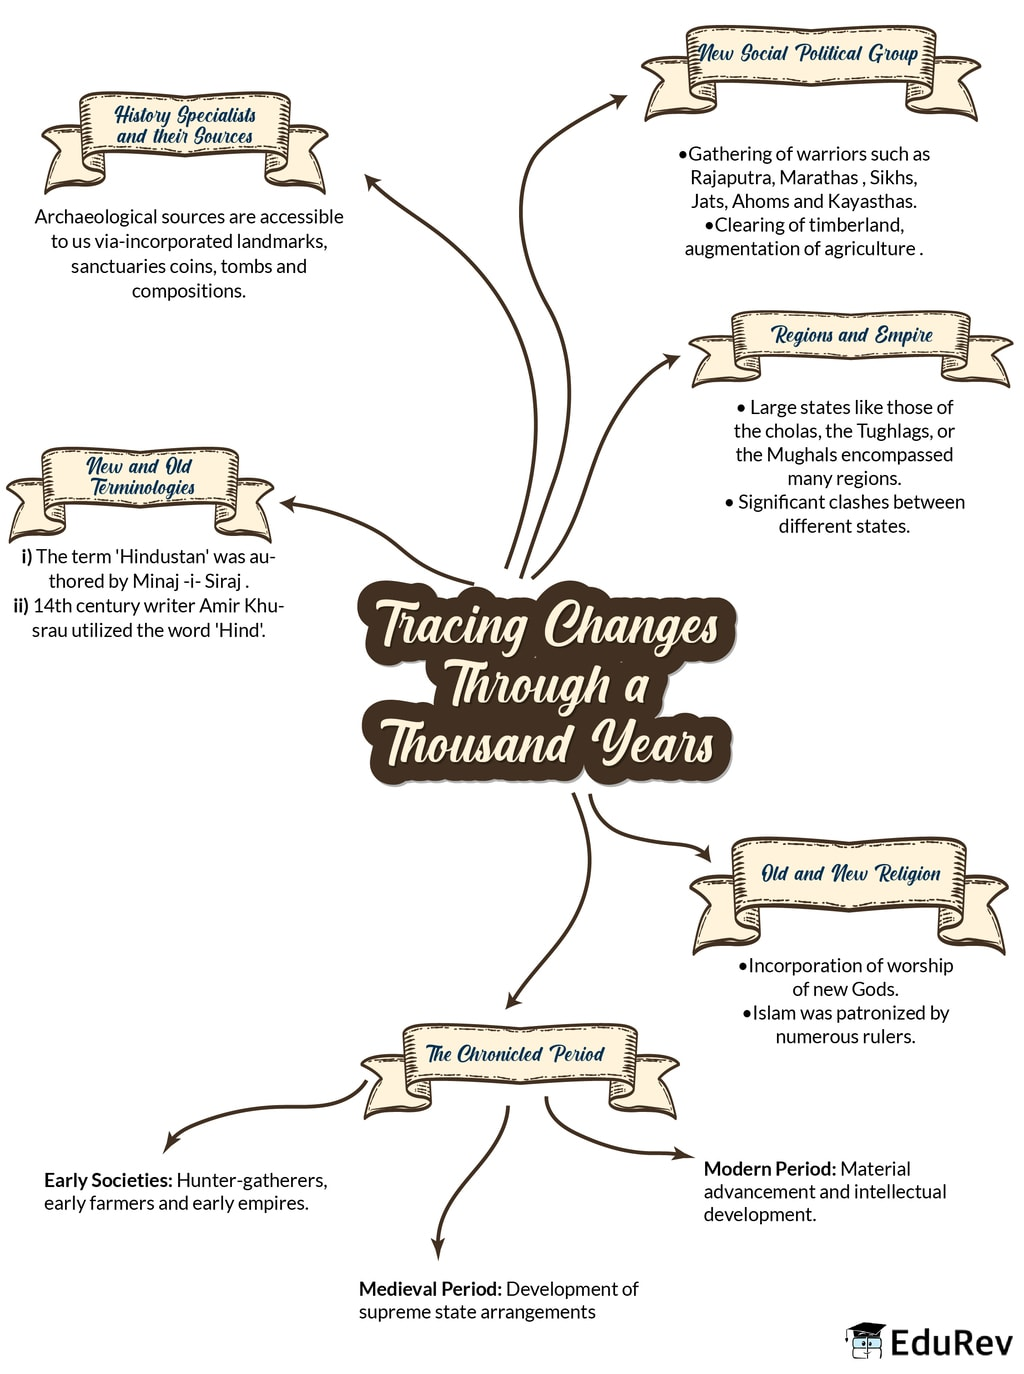 Mindmap: Tracing Changes Through A Thousand Years Notes | EduRev